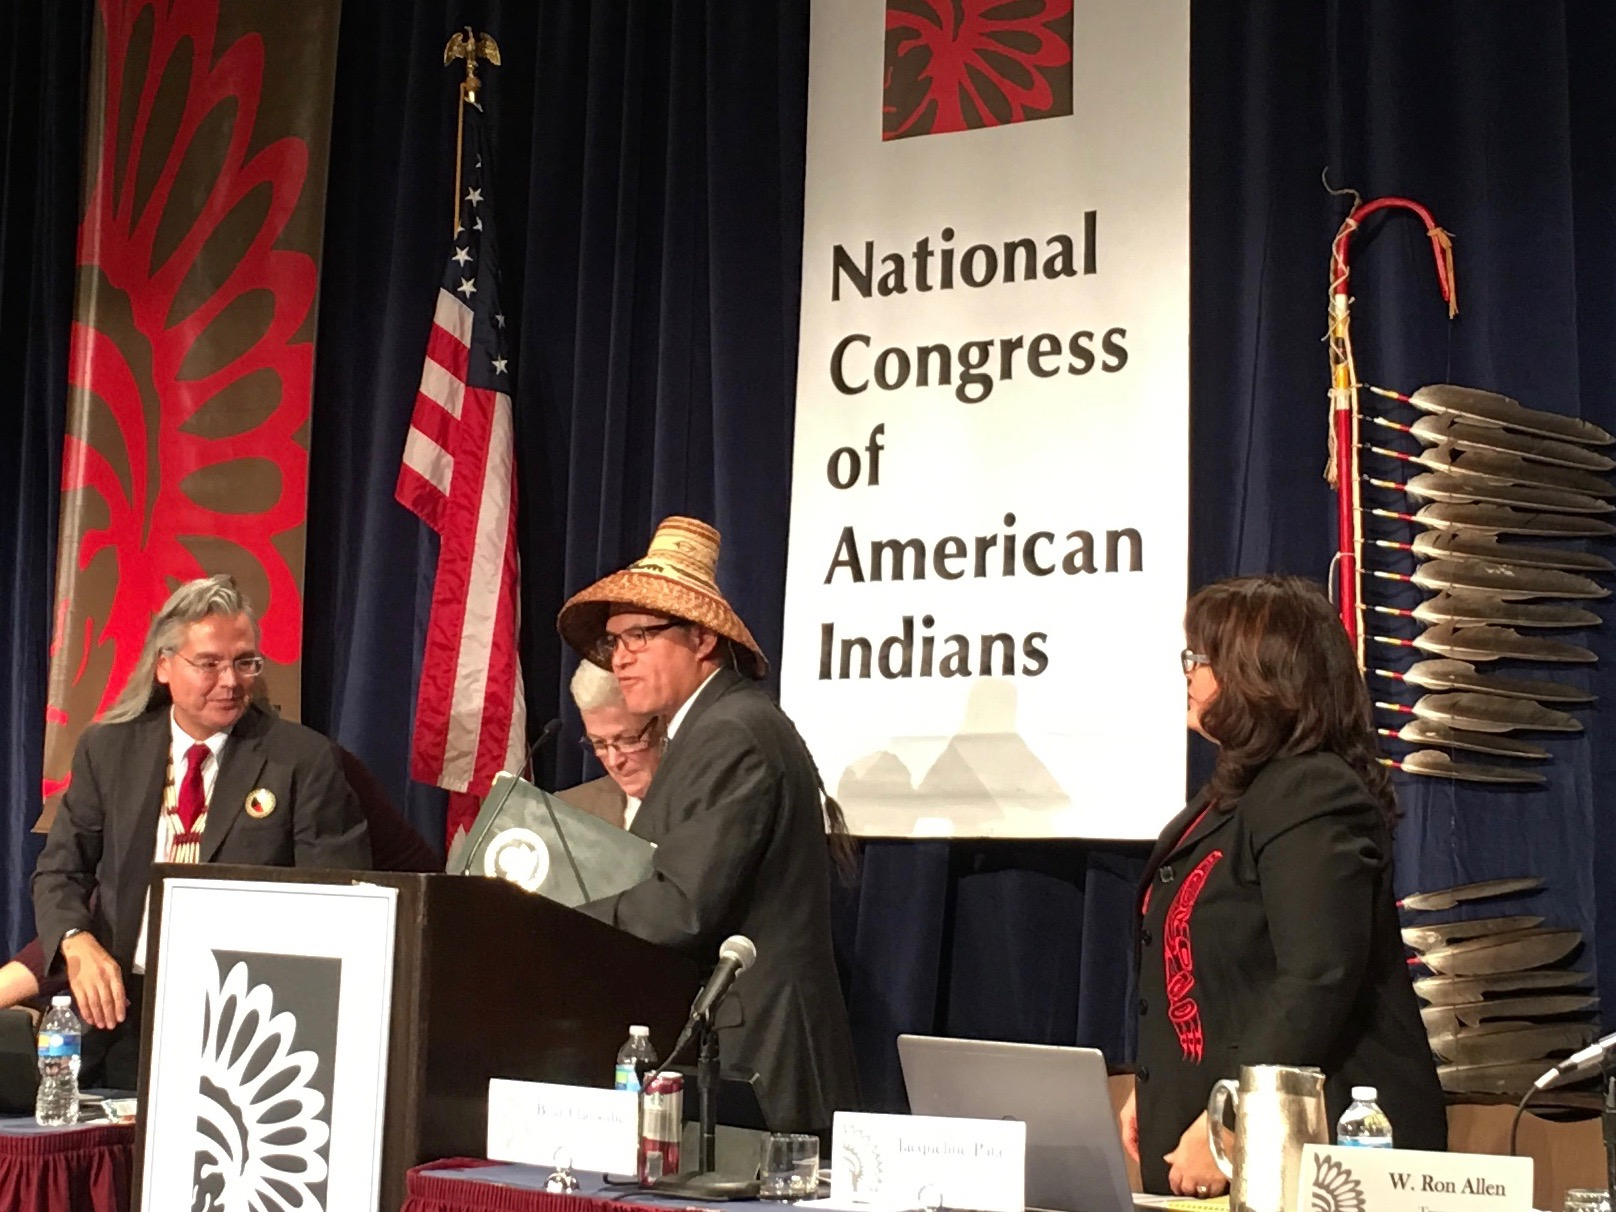 Updates from National Congress of American Indians winter session in D.C.